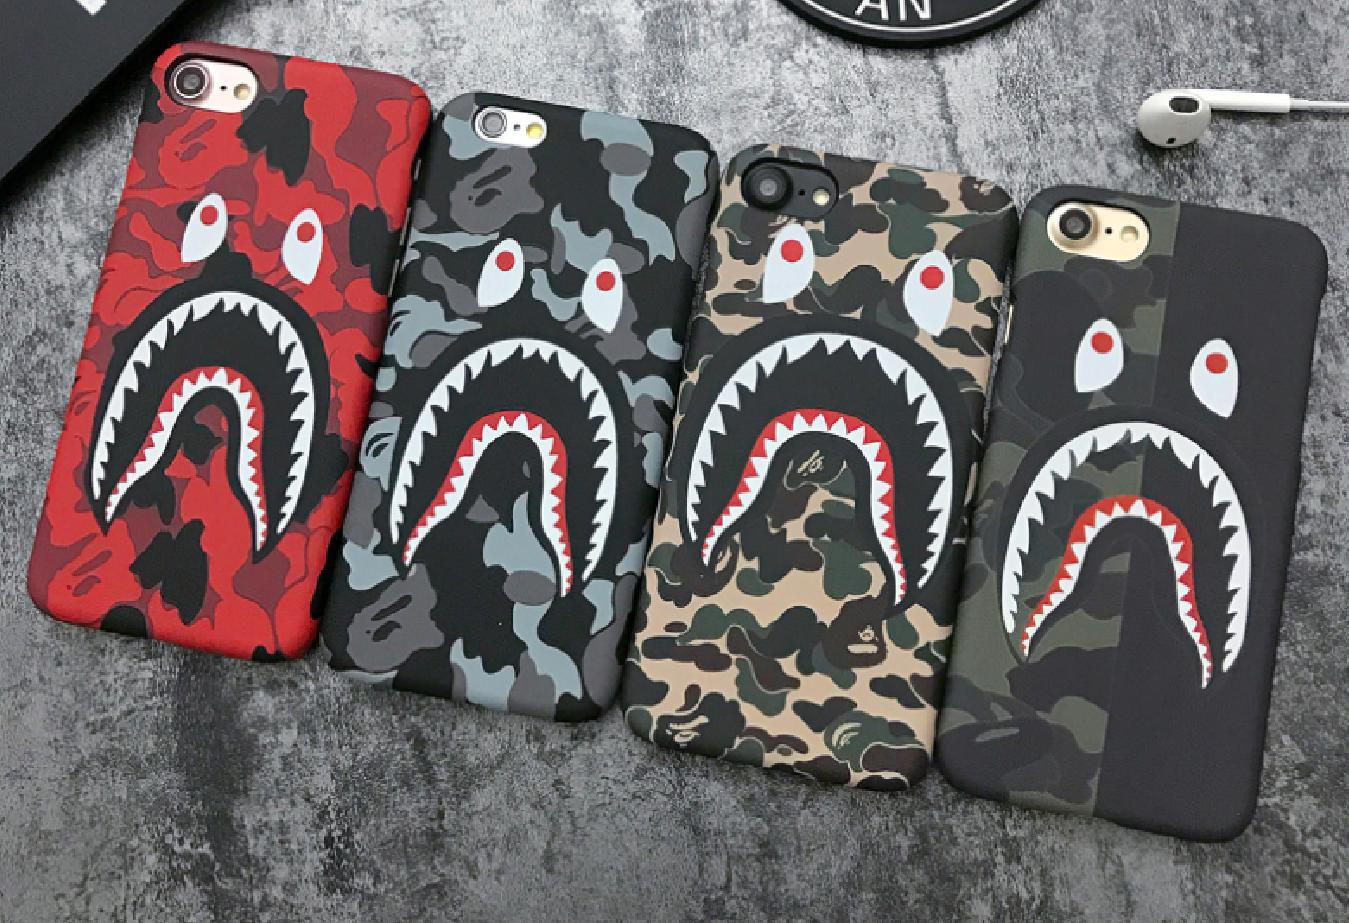 Image of Bape shark print phone shell phone case for Iphone 6/6s/6p/7p/7/X